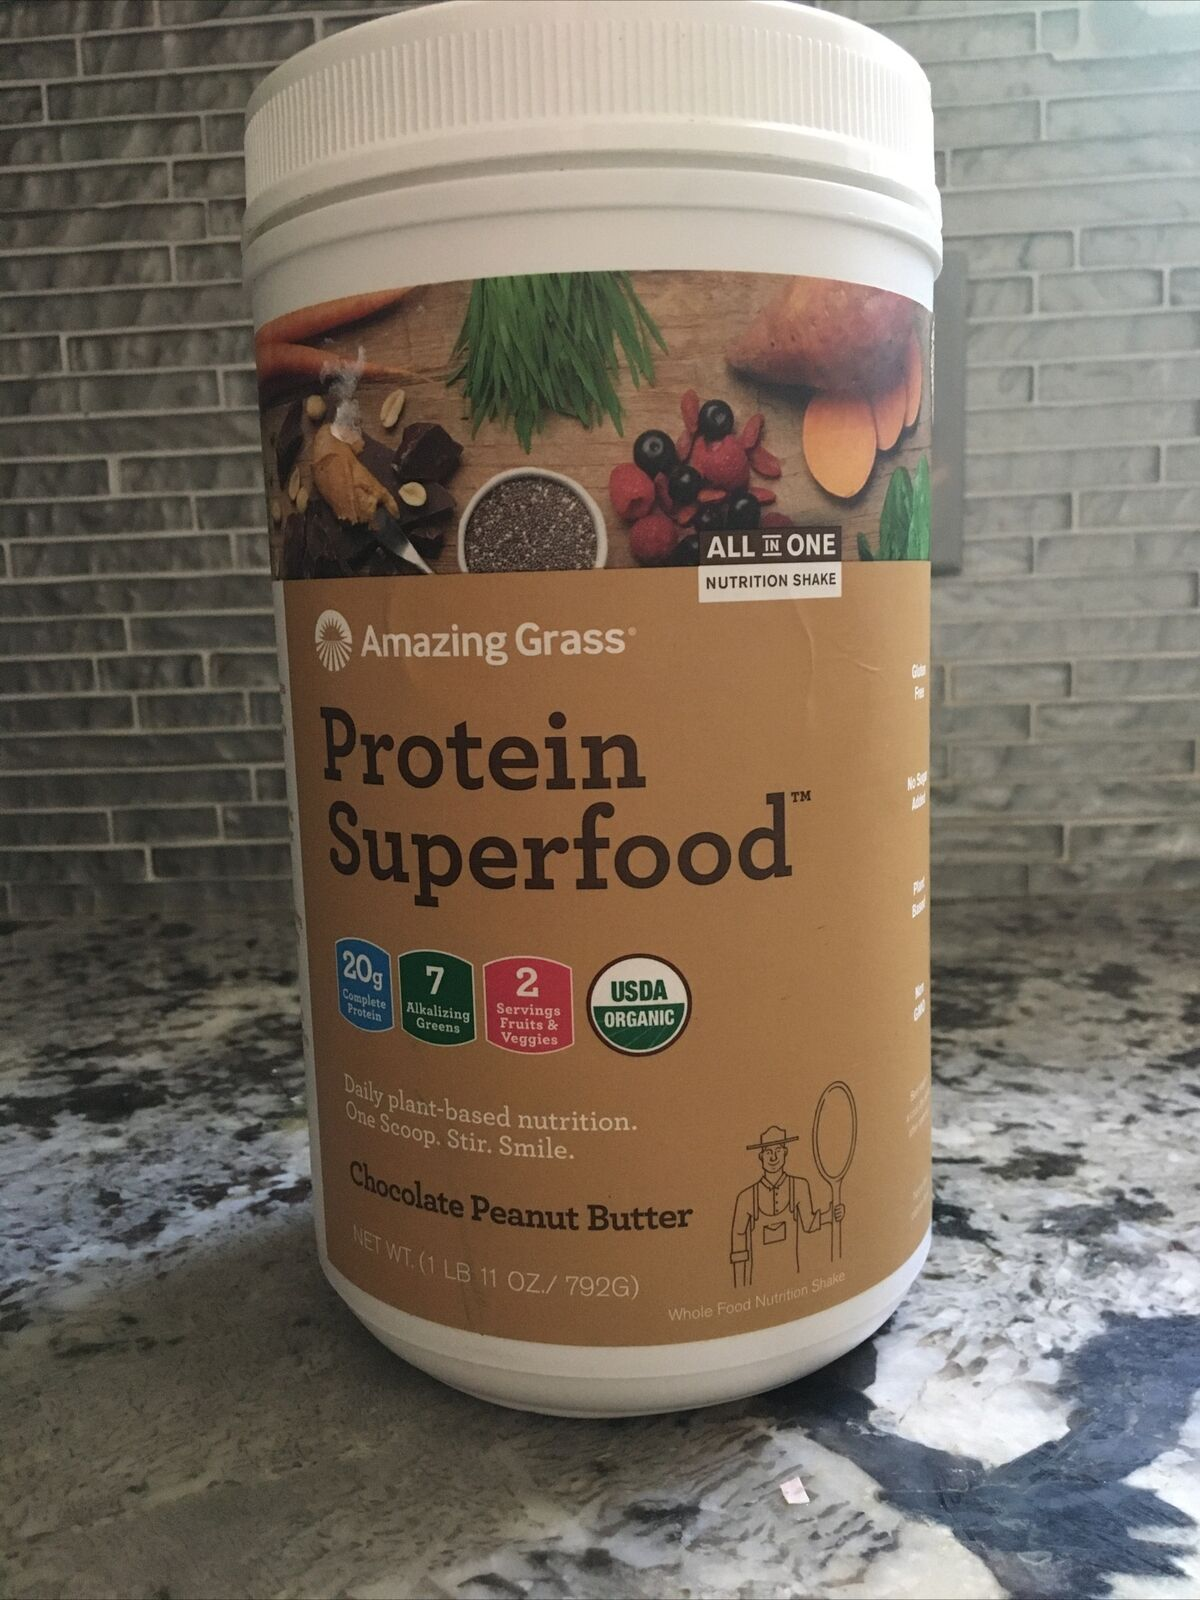 Amazing Grass Protein Superfood Chocolate Peanut Butter 1 Lb 11oz Exp. 08/2021